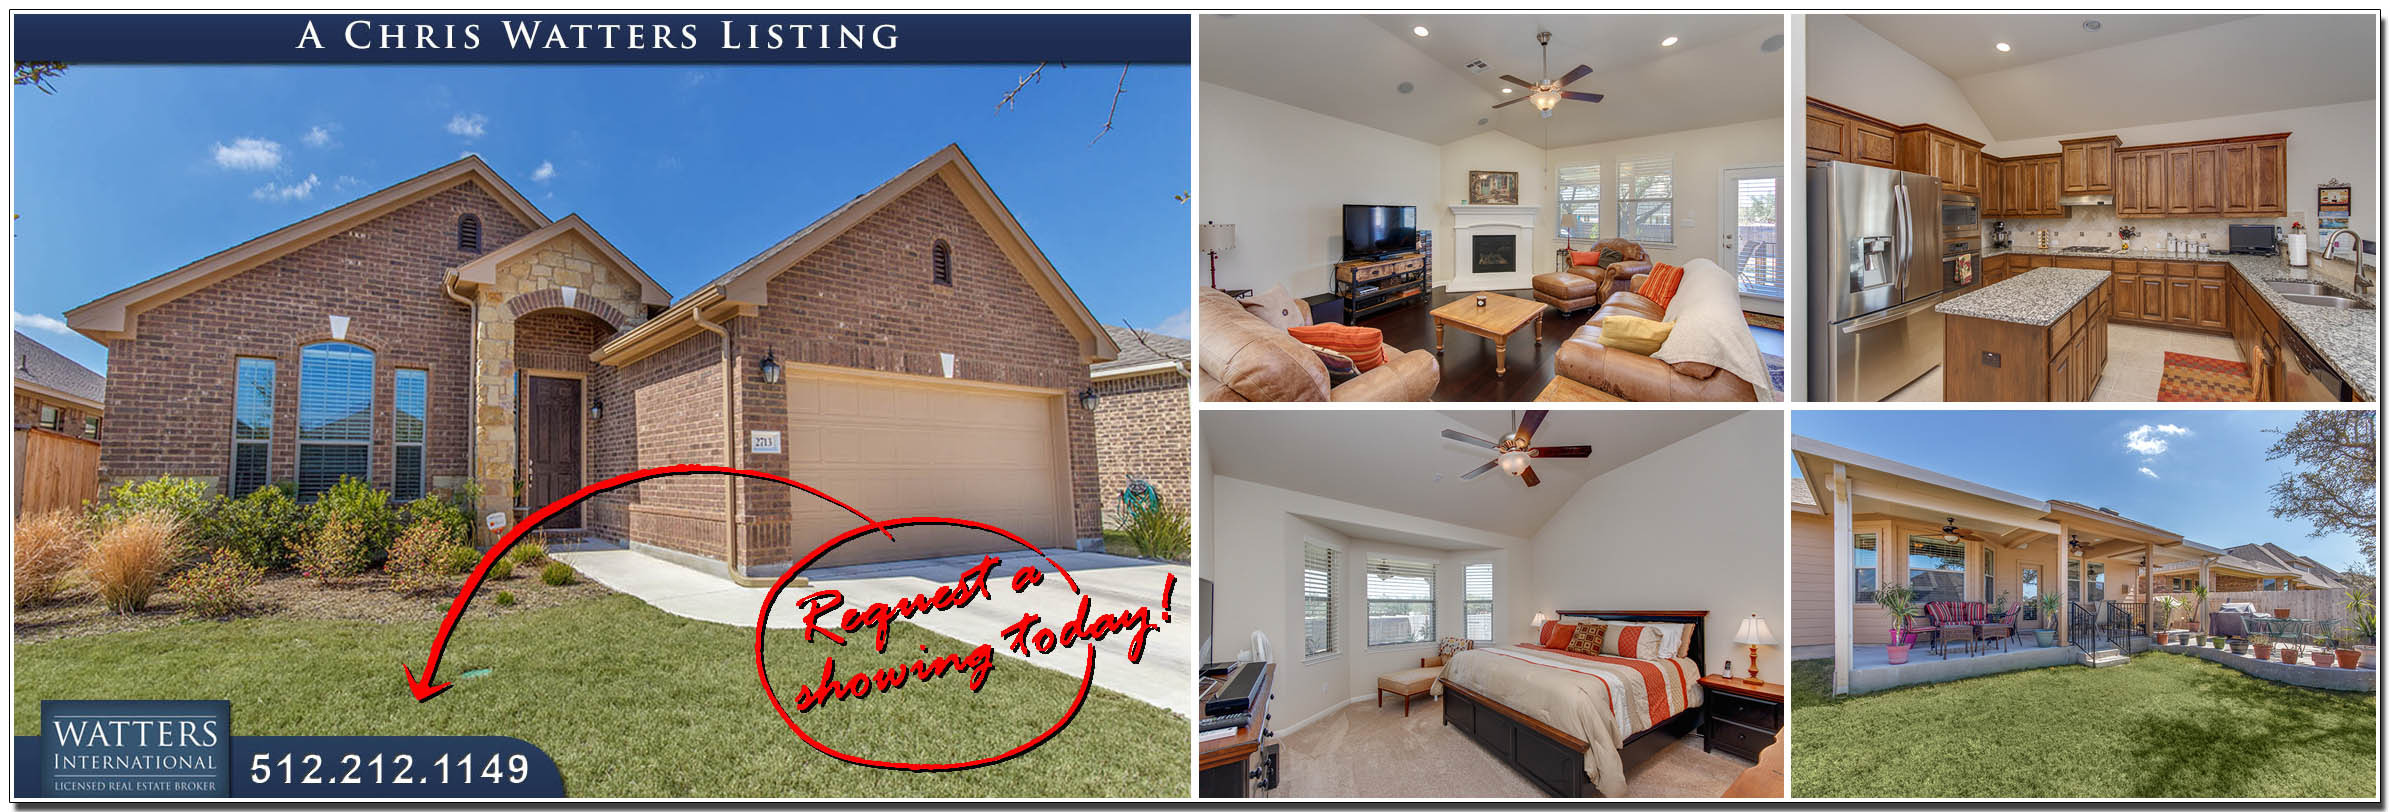 2713 Coral Valley Dr Leander, TX 78641